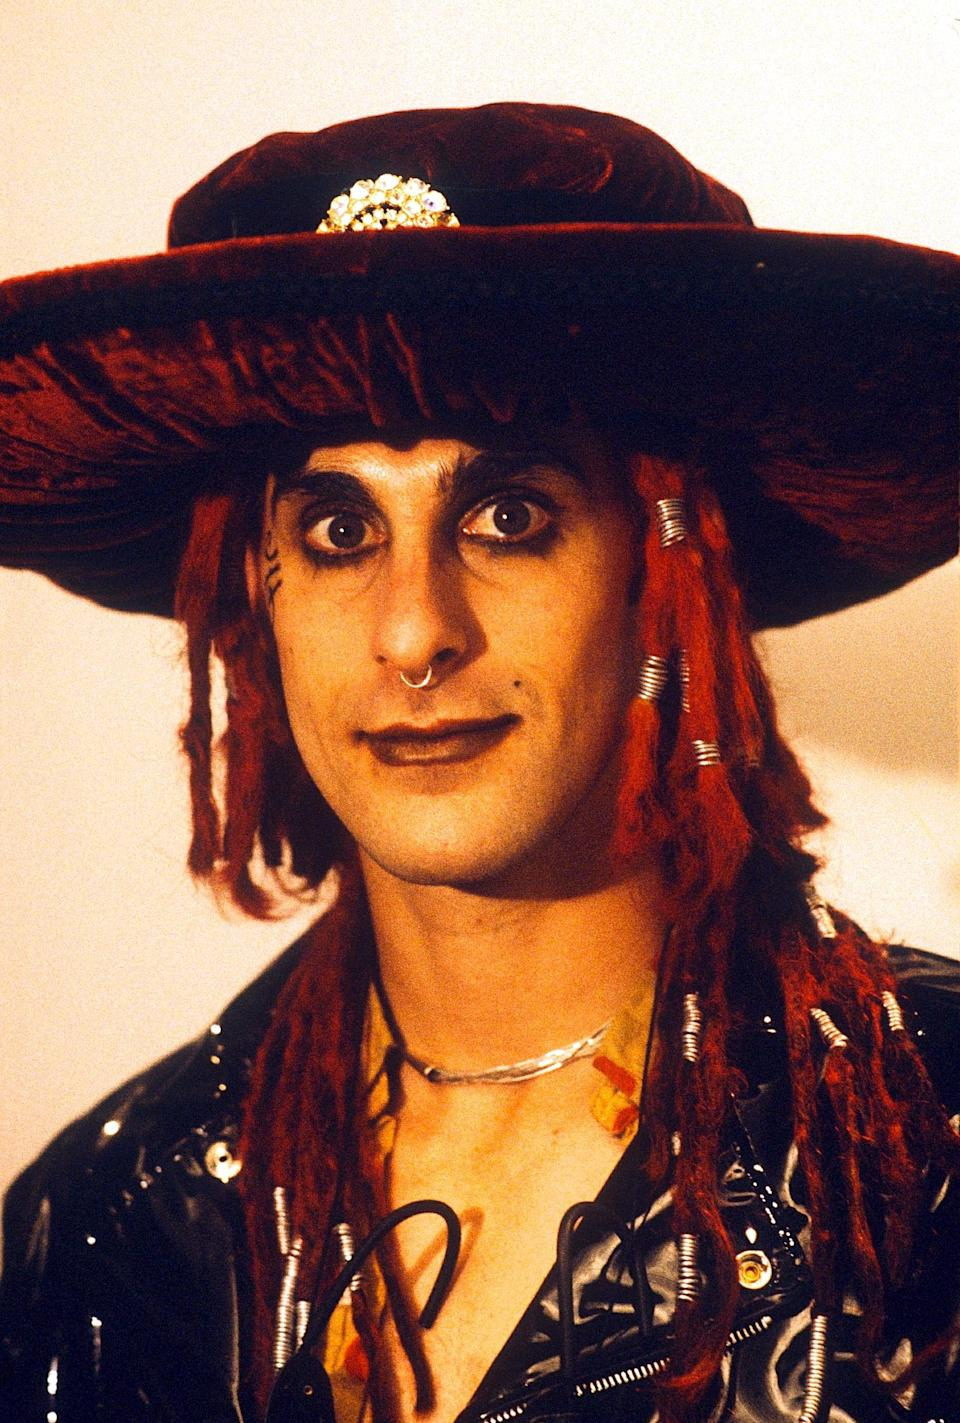 Perry Farrell in the '90s. (Photo: Brian Rasic/Getty Images)